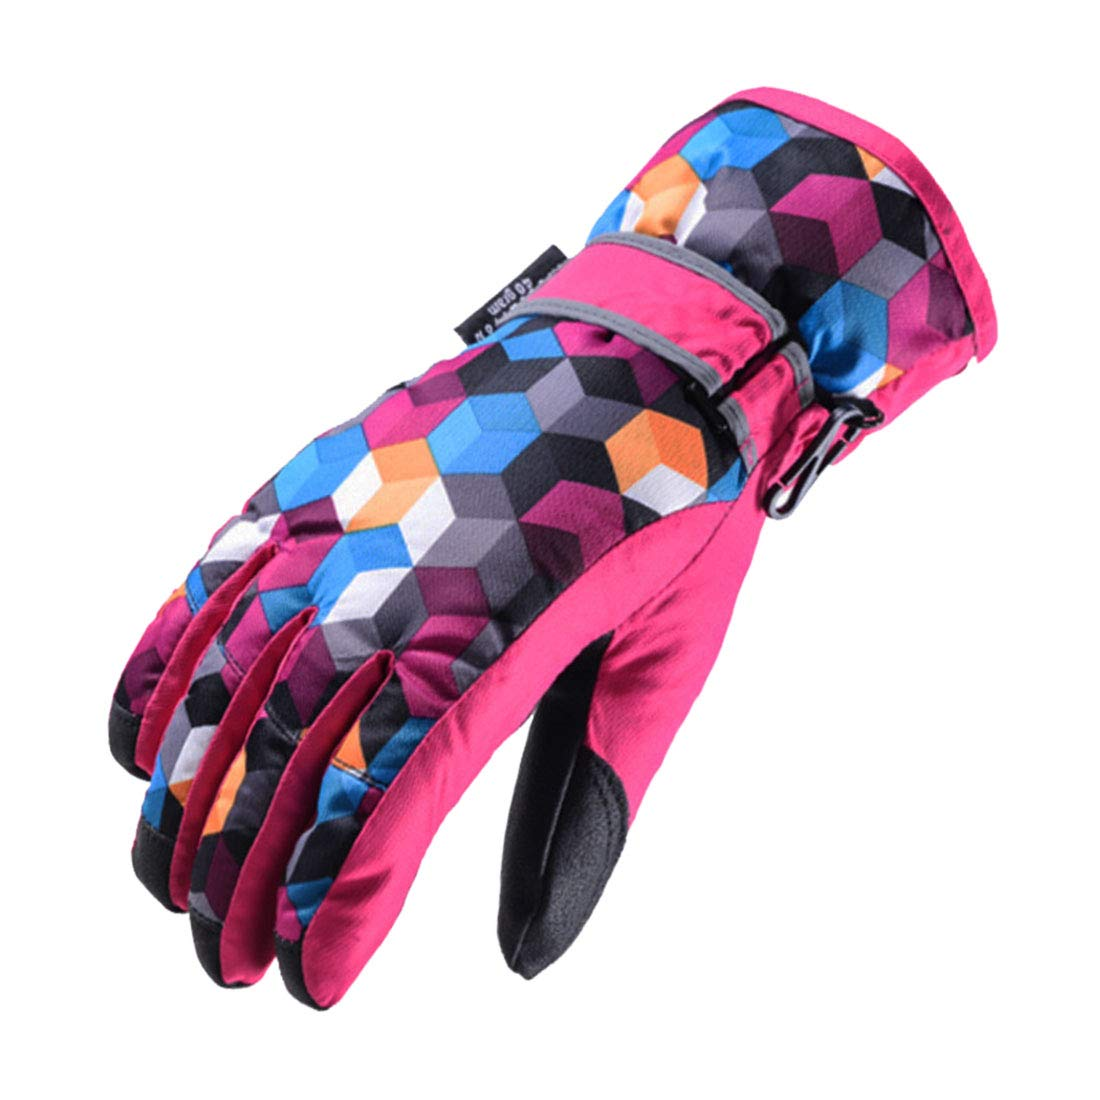 Xianheng Kids Ski Gloves Winter Warm Waterproof Windproof Thermal Children (S, Red) VF0158/XHCA1